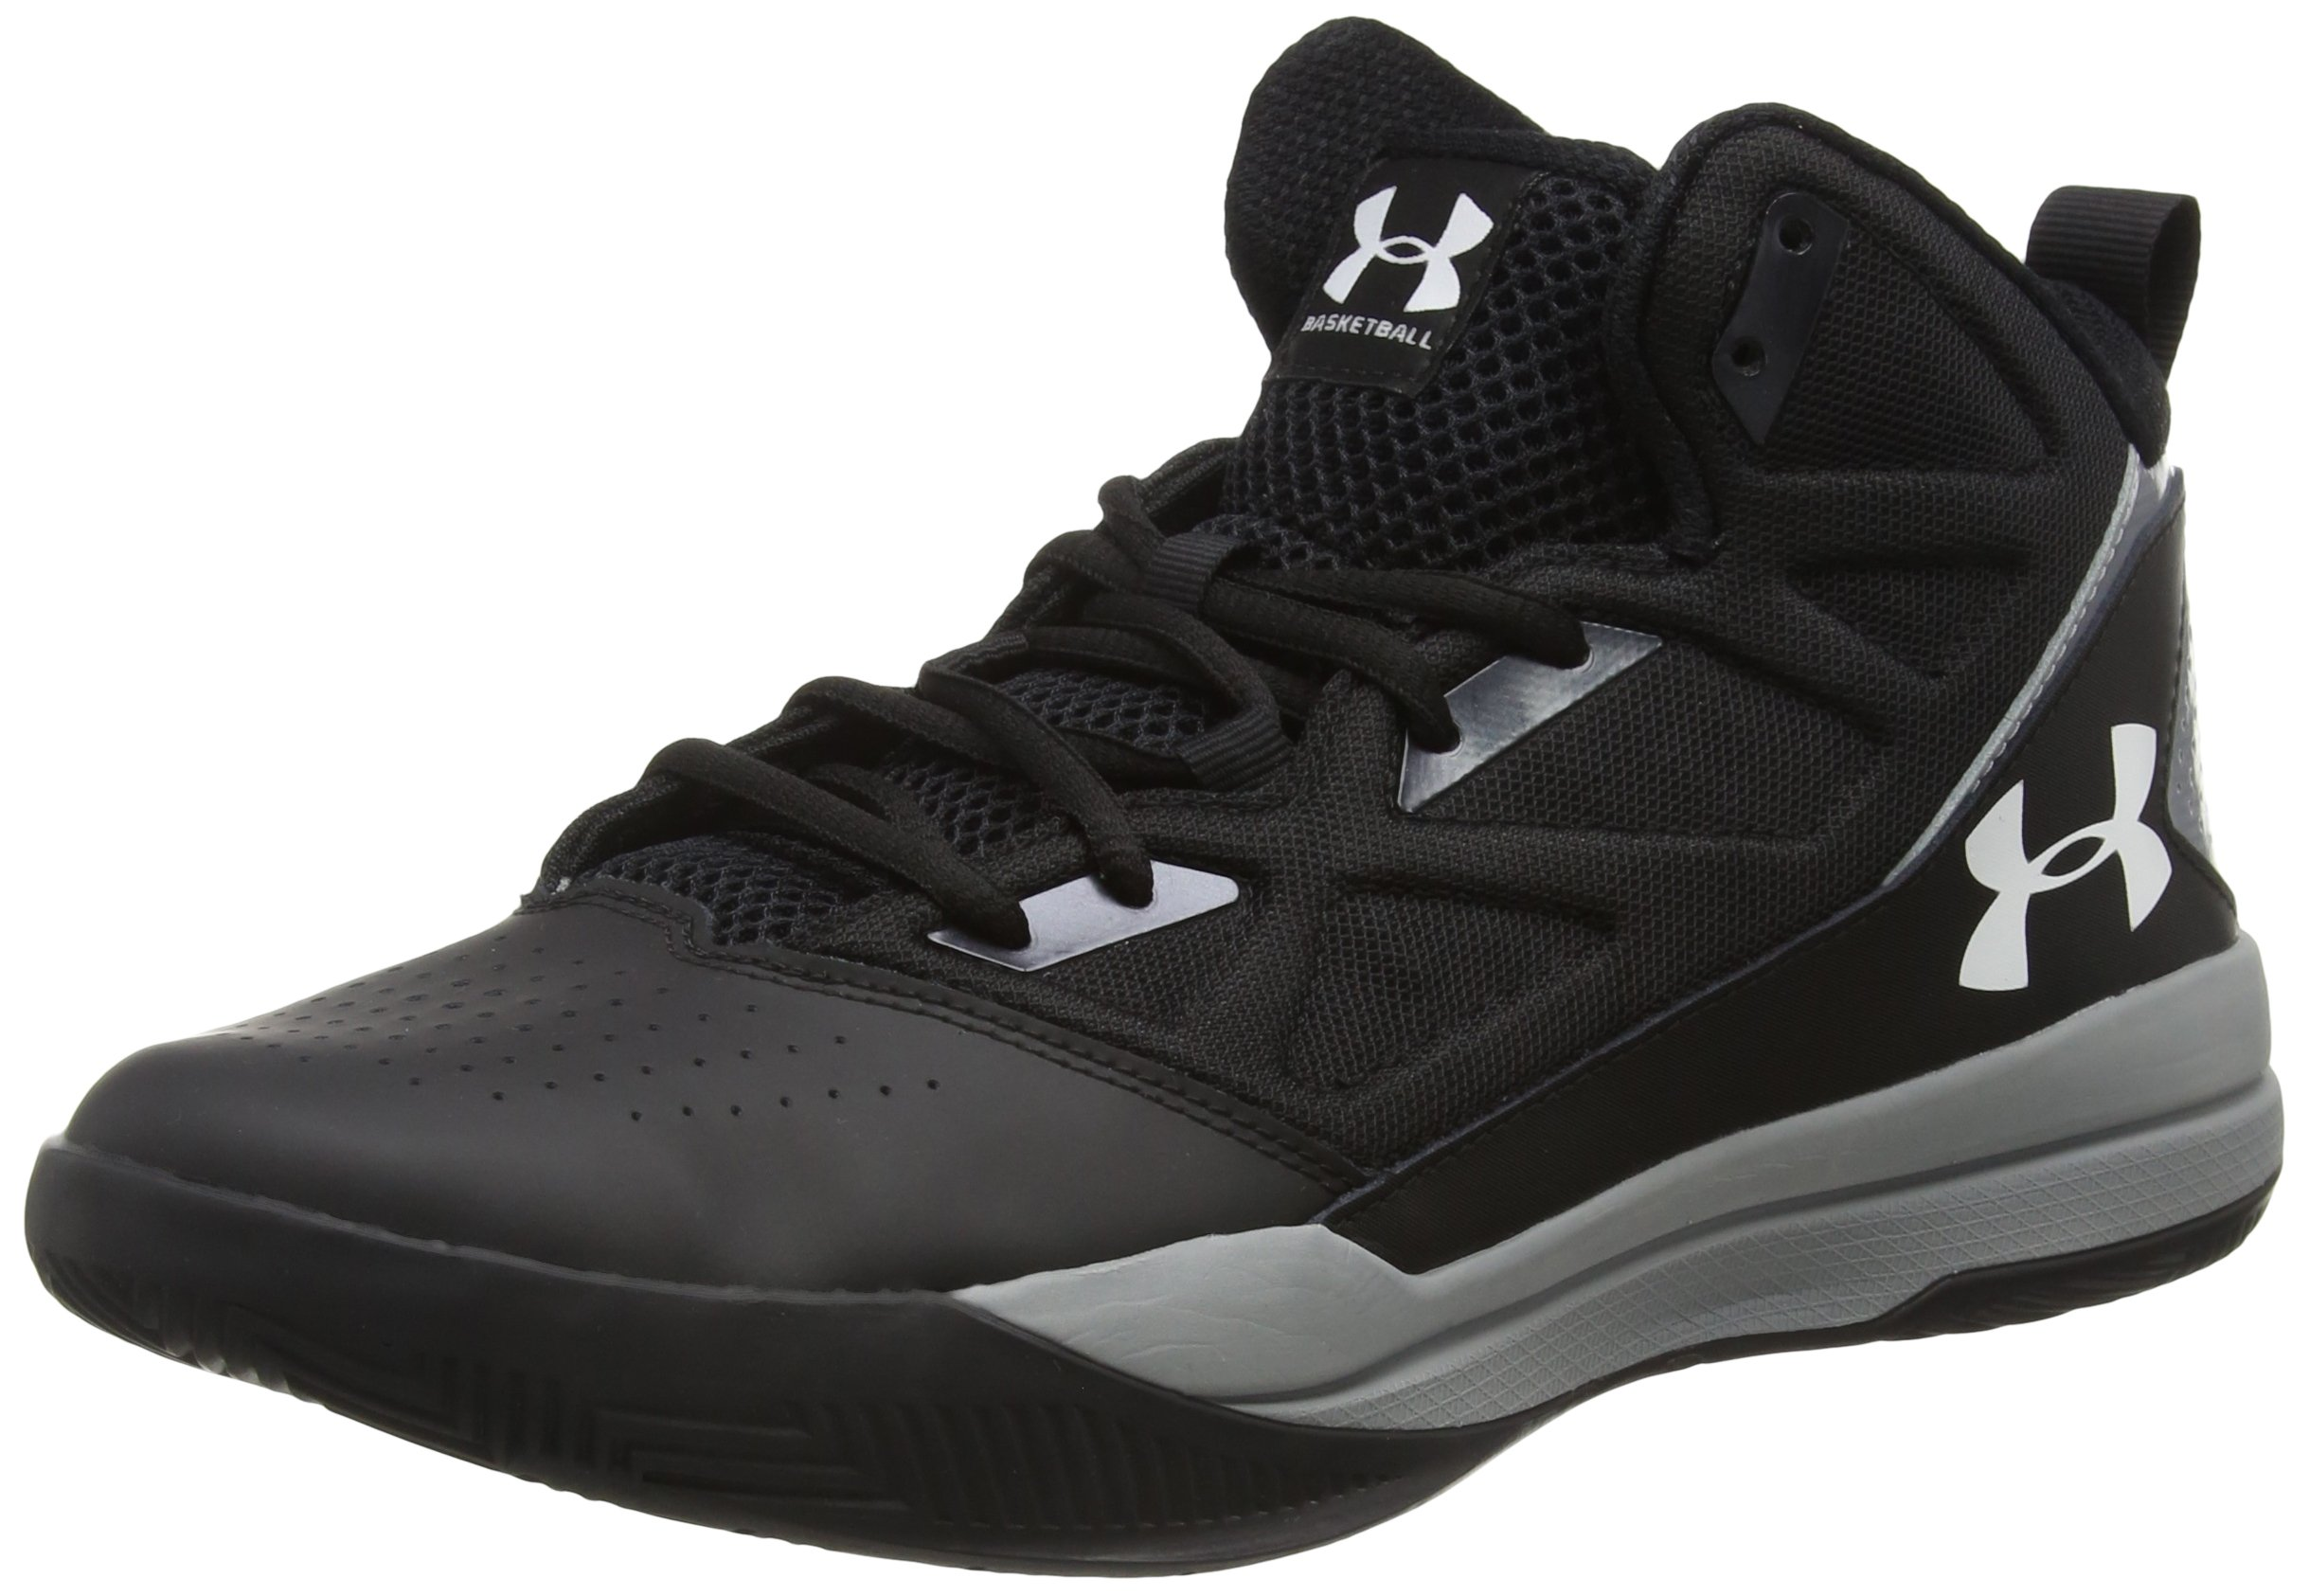 Under Armour Men's Jet Mid, Black (001)/Steel, 10.5 by Under Armour